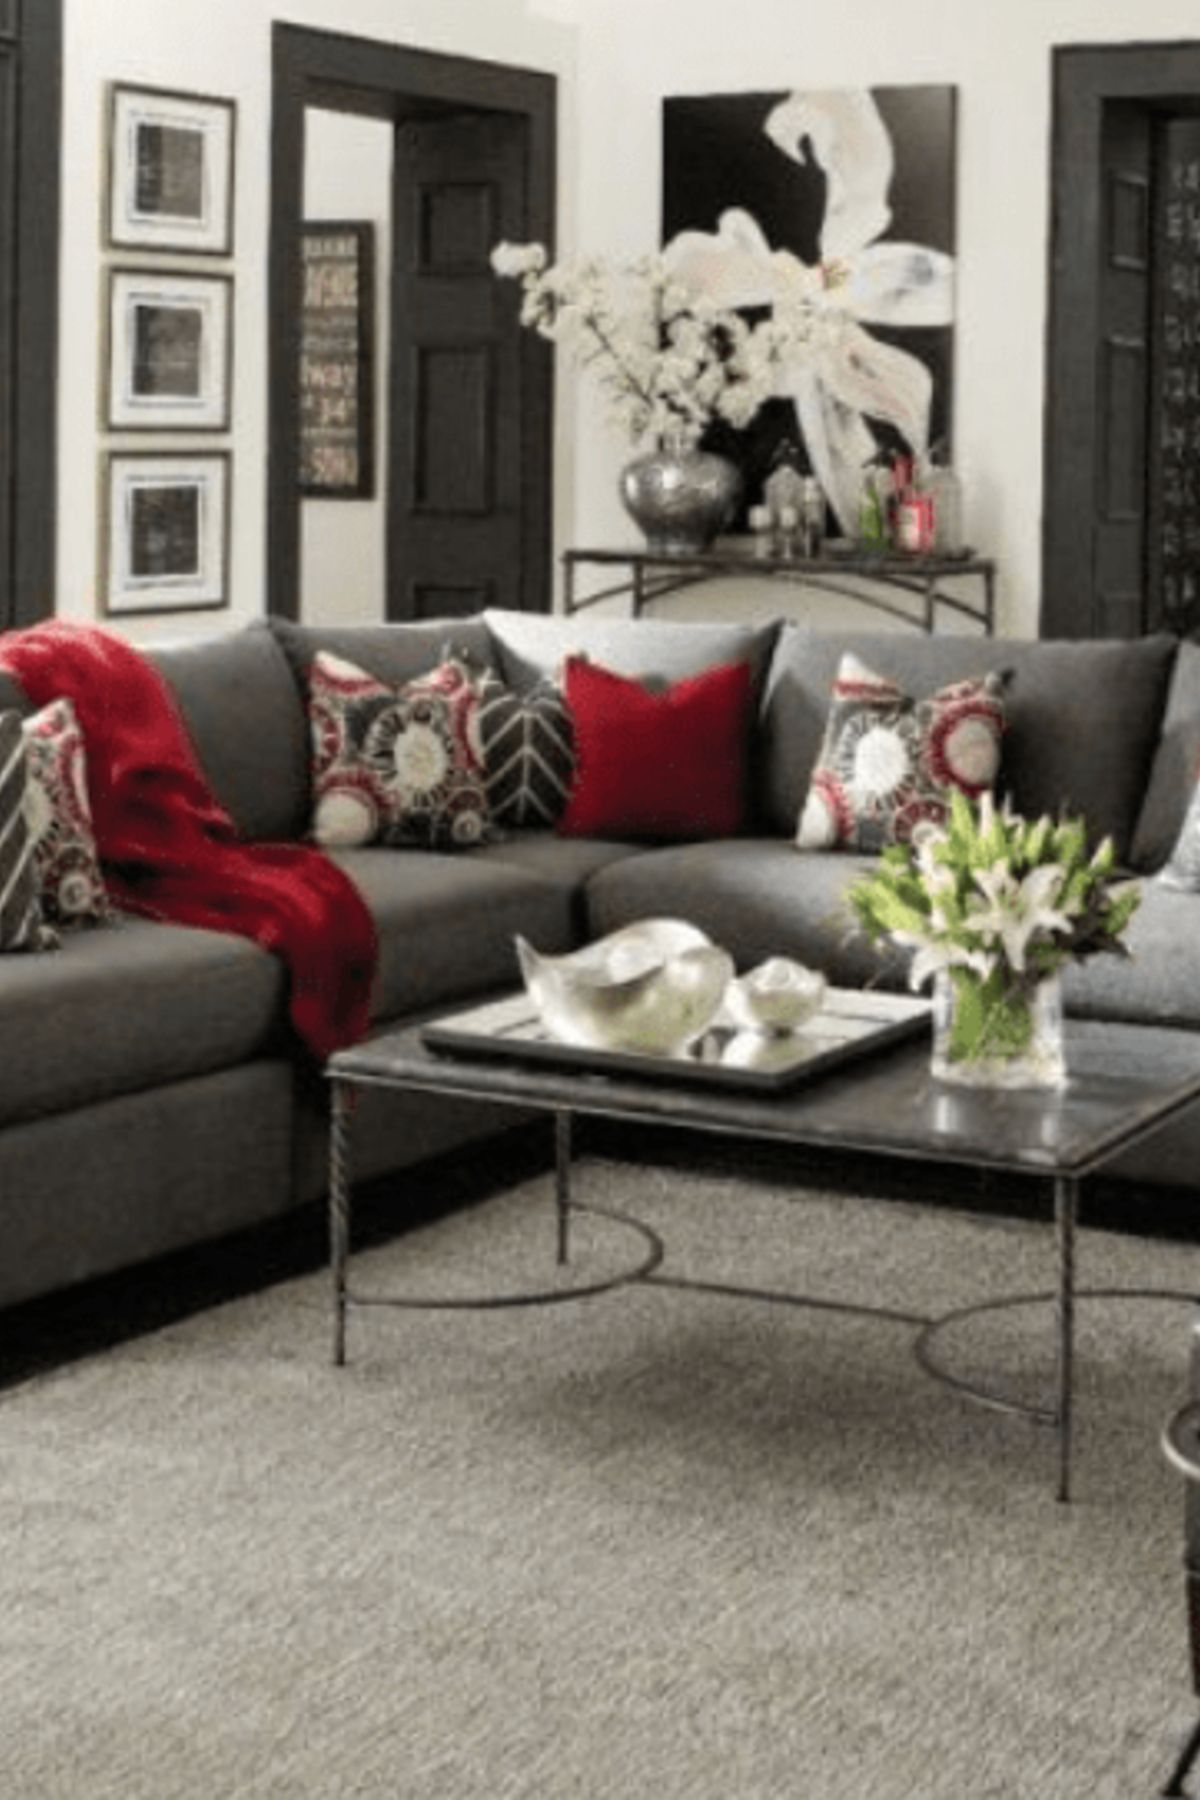 Home Decor Gray Living Room With Red Accent Pillows Light Gray Walls With Dark Grey Trims Grey And Red Living Room Living Room Decor Gray Living Room Red